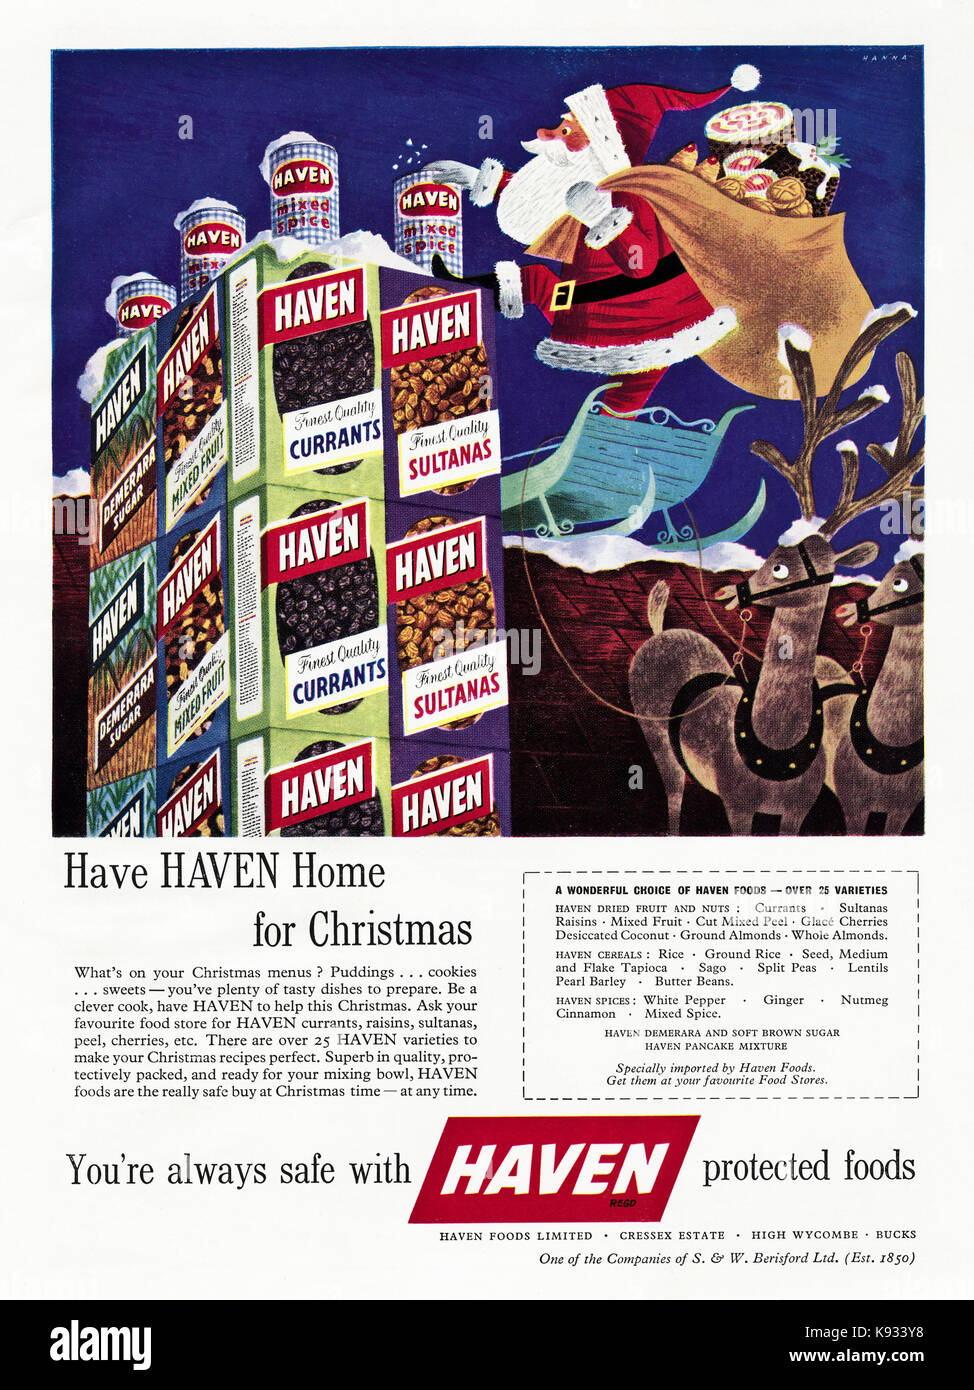 1950s old vintage original british magazine advert advertising Haven protected foods for Christmas dated 1958 - Stock Image